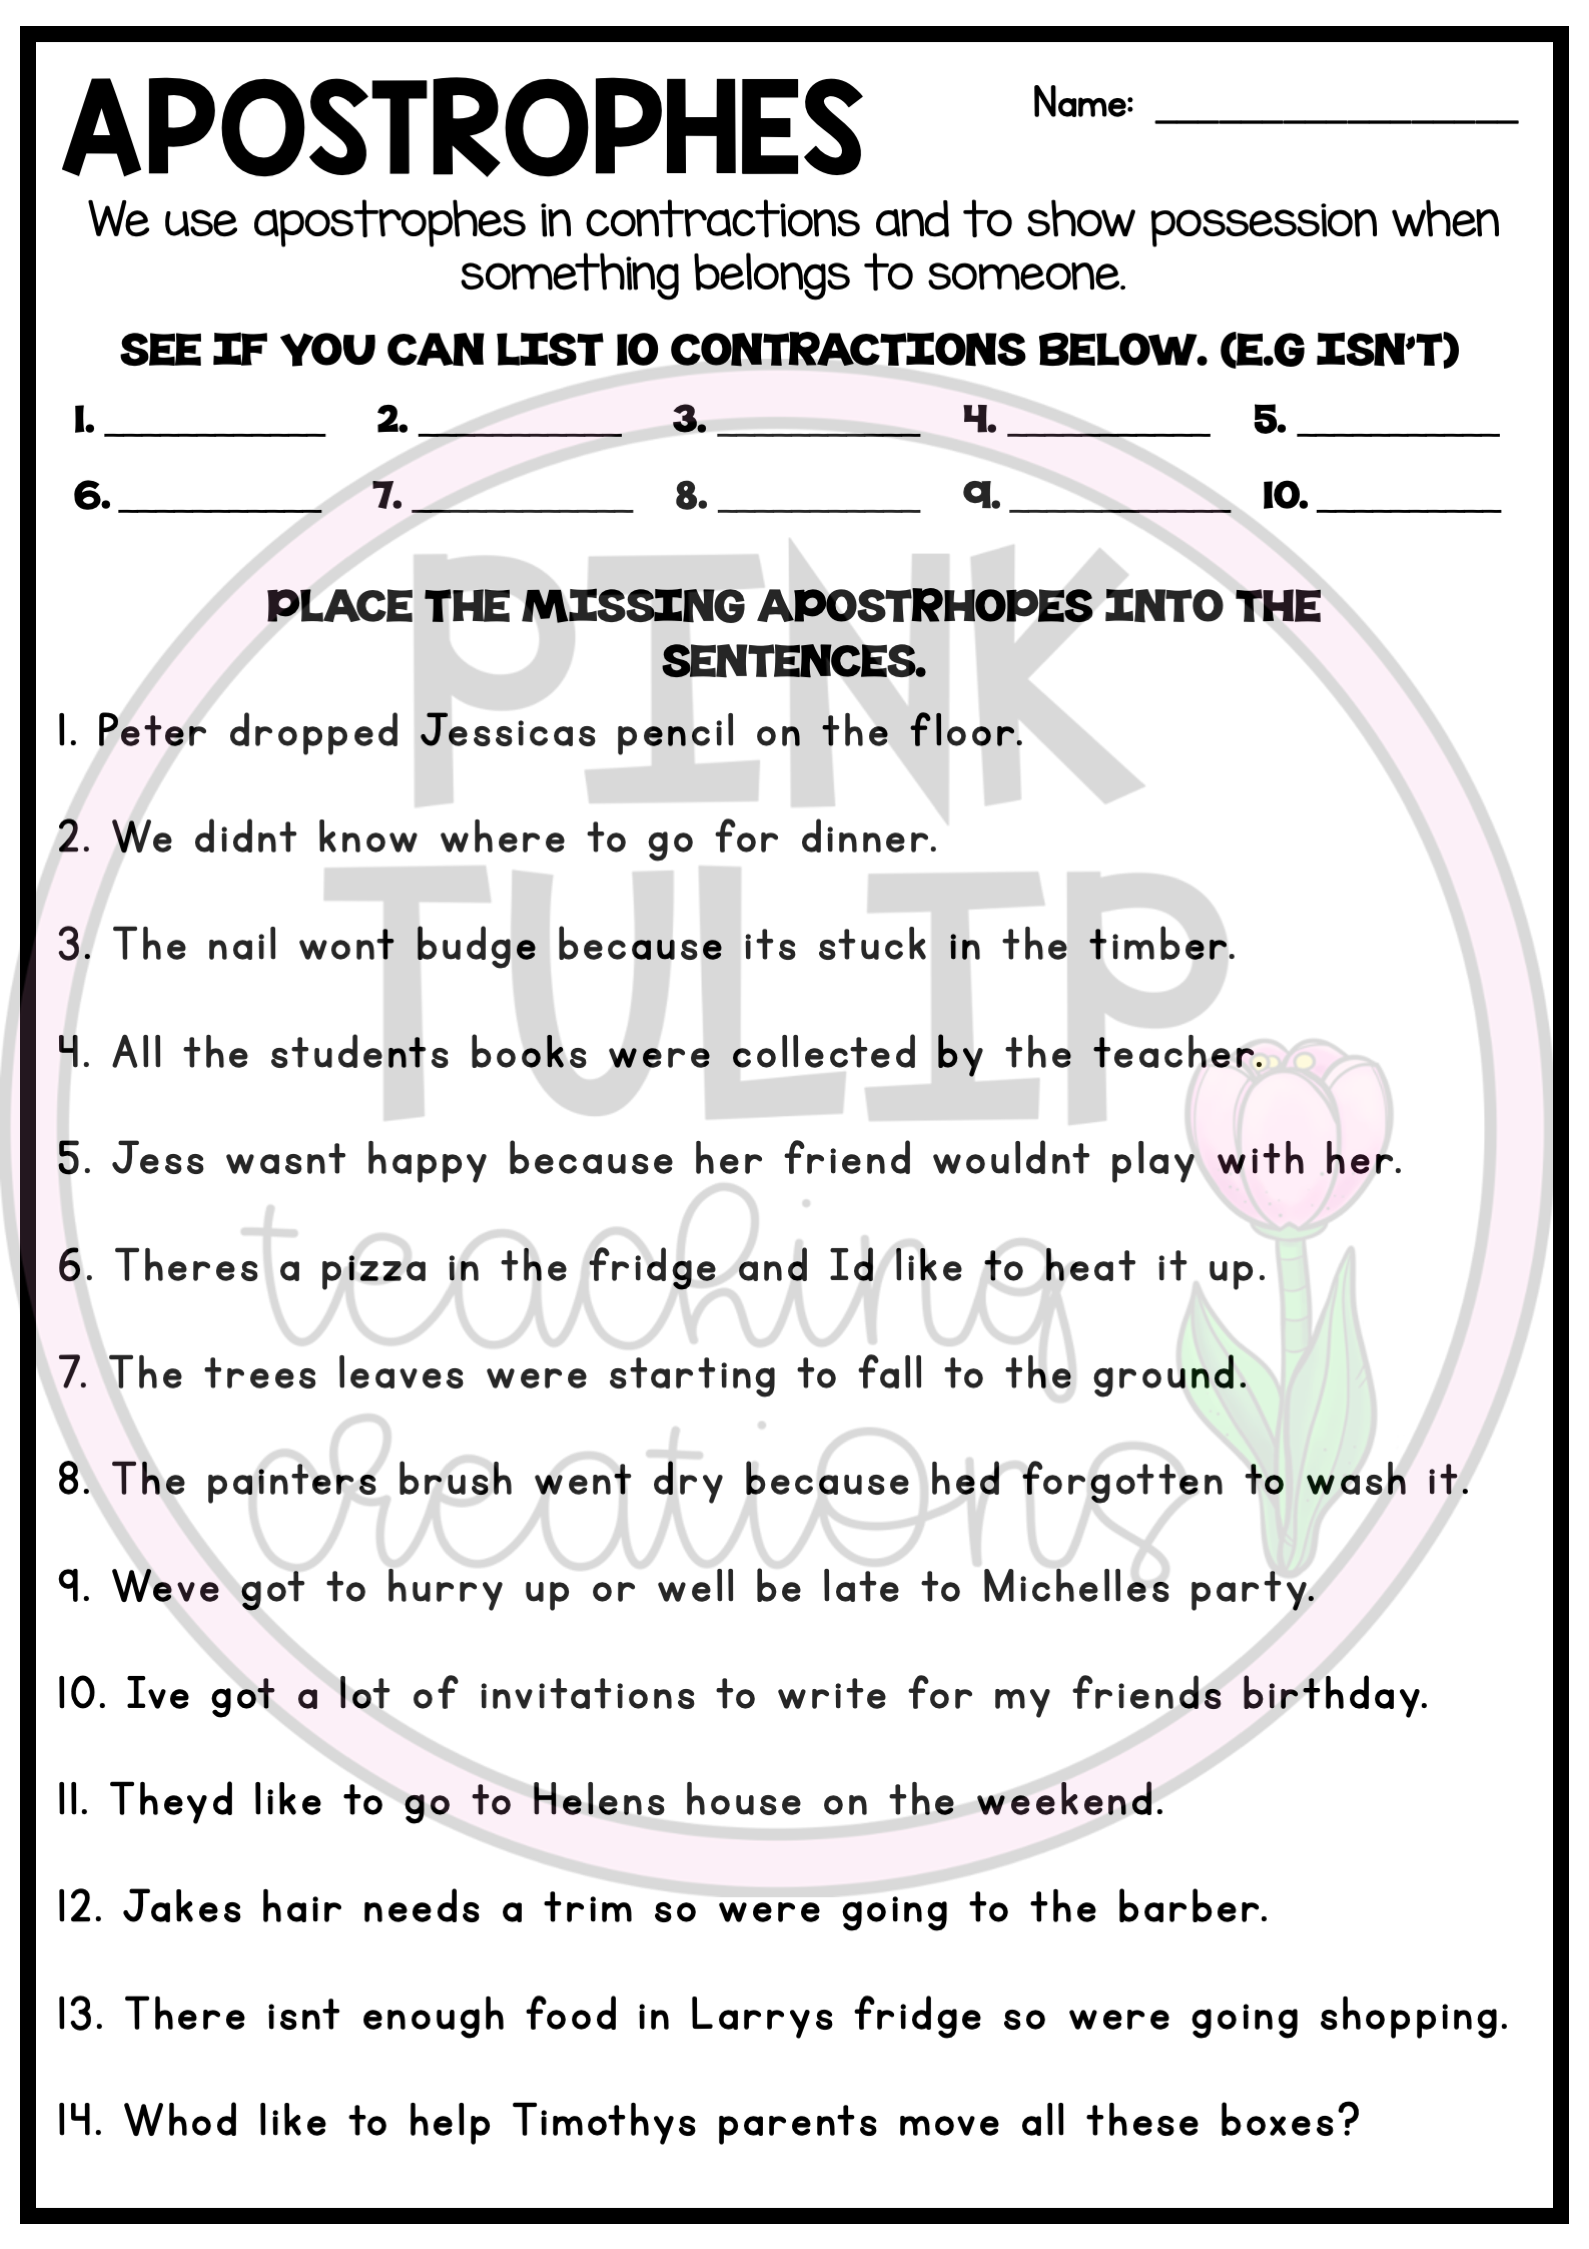 Using Apostrophes Worksheets